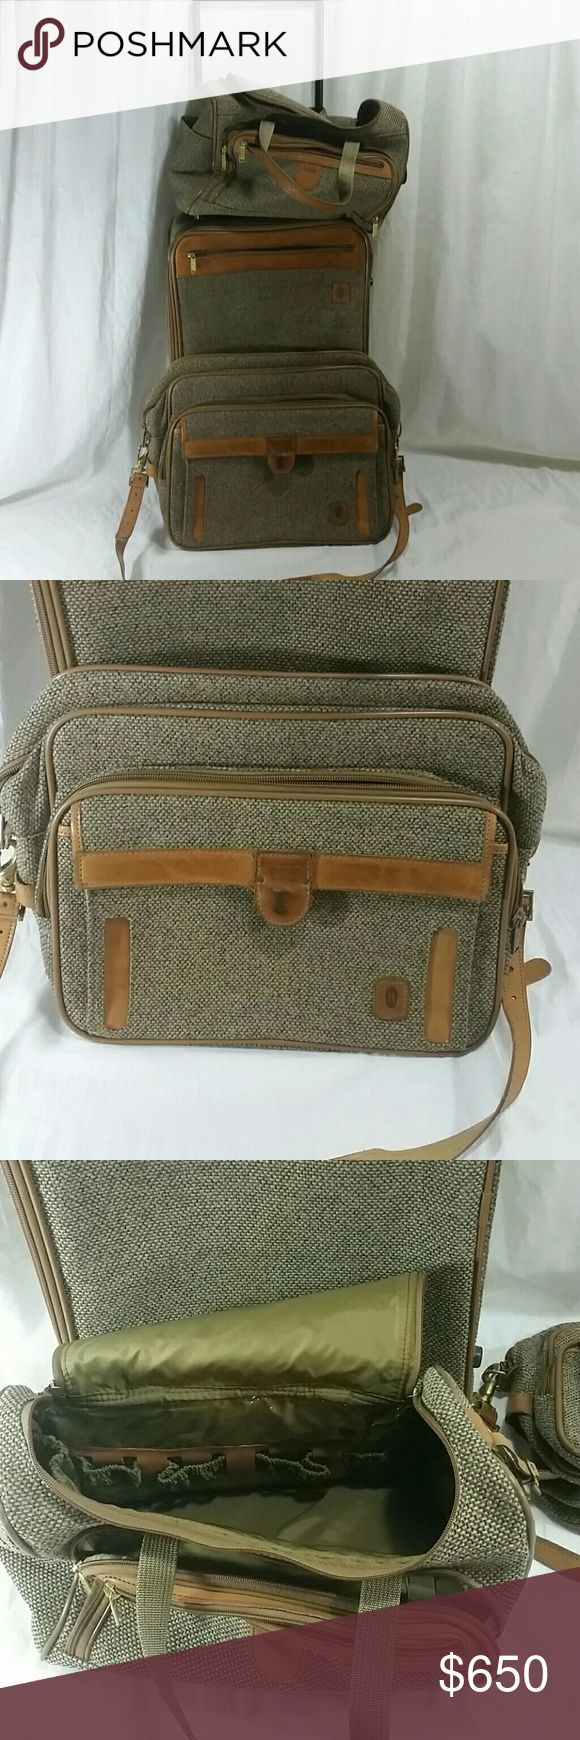 Vintage Hartmann Luggage set, Travel suitcase All in very good condition  Comes with lock and keys If you have any questions, please let me know and I will be happy to help.   Vintage tweed and leather luggage  Obviously bc it is not new there will be some signs of age and use. Hartmann  Bags Luggage & Travel Bags